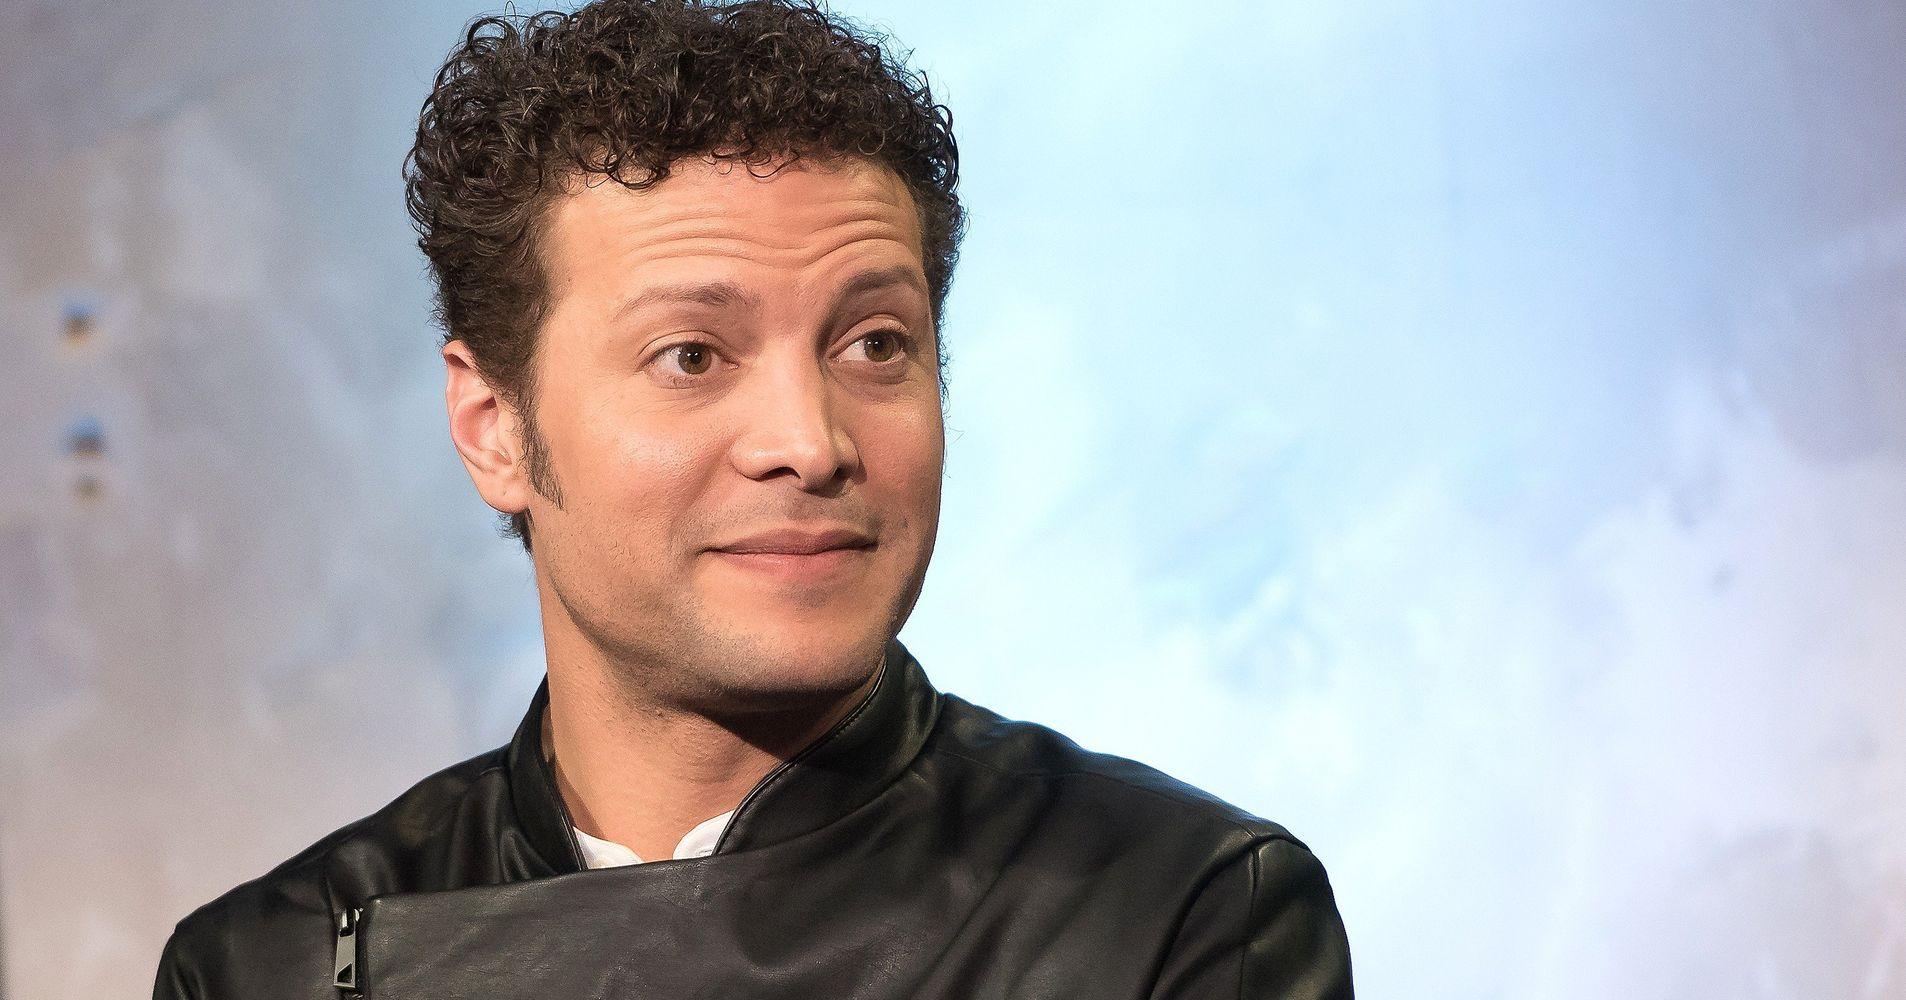 Where In The World Is Justin Guarini? | HuffPost